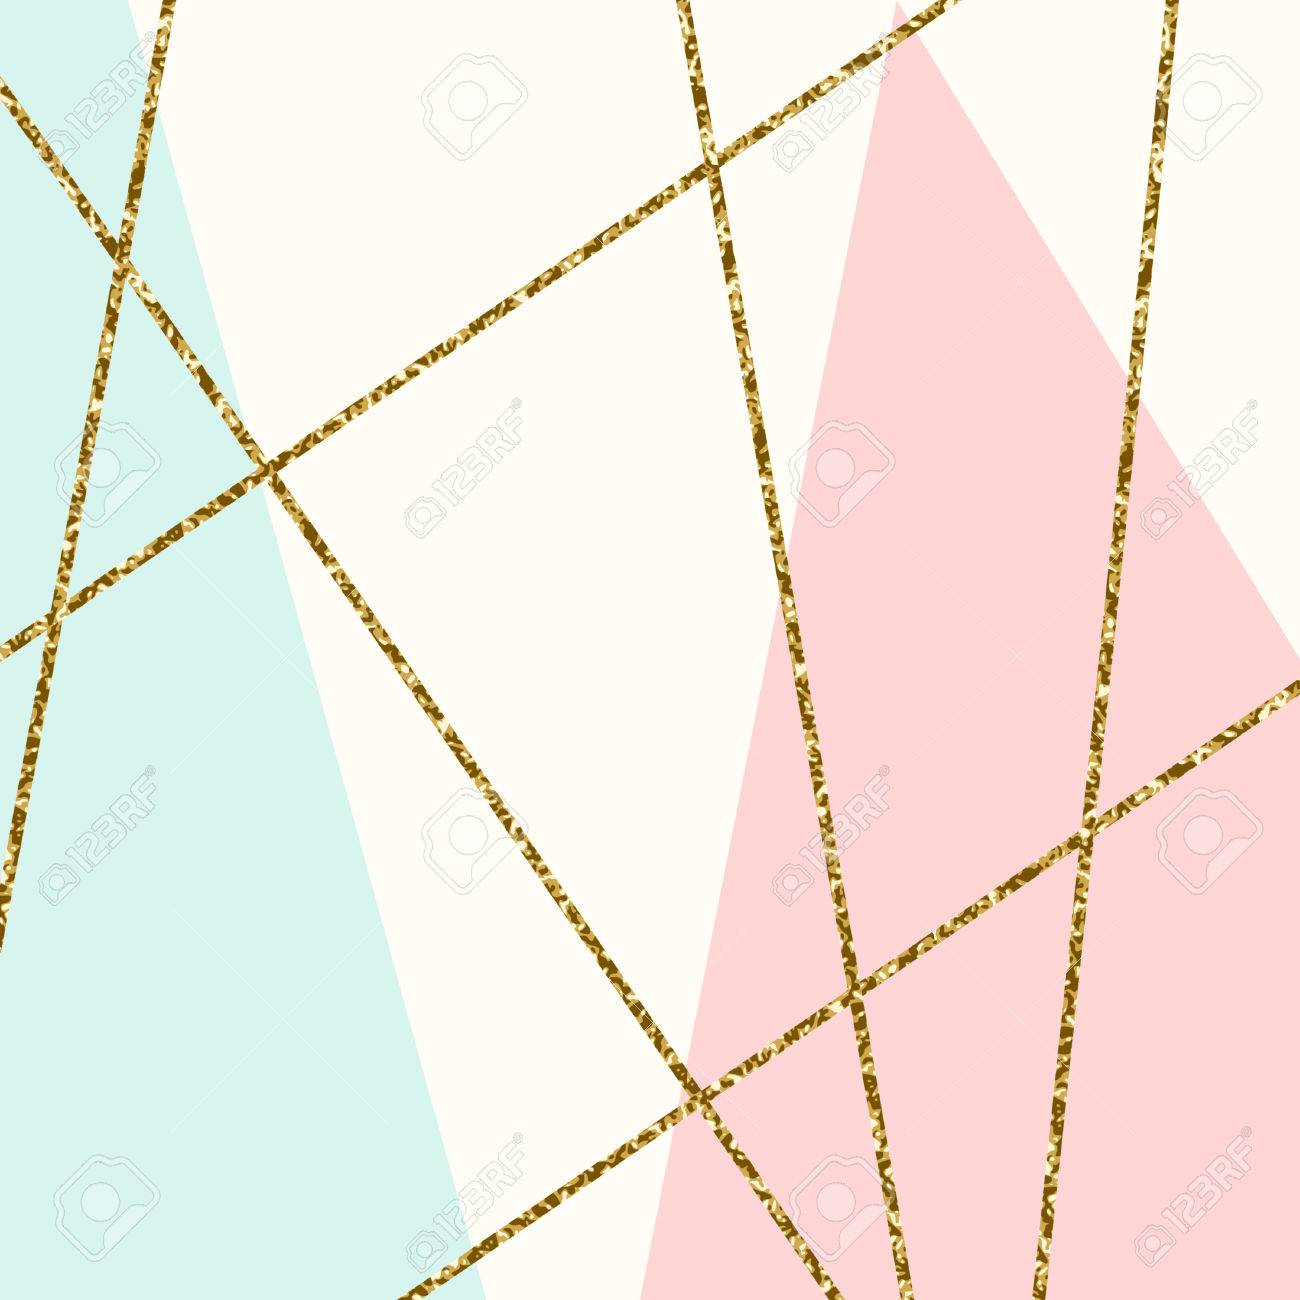 Abstract geometric composition in light blue, cream, gold glitter and pastel pink. Modern and stylish abstract design poster, cover, card design. - 65013526